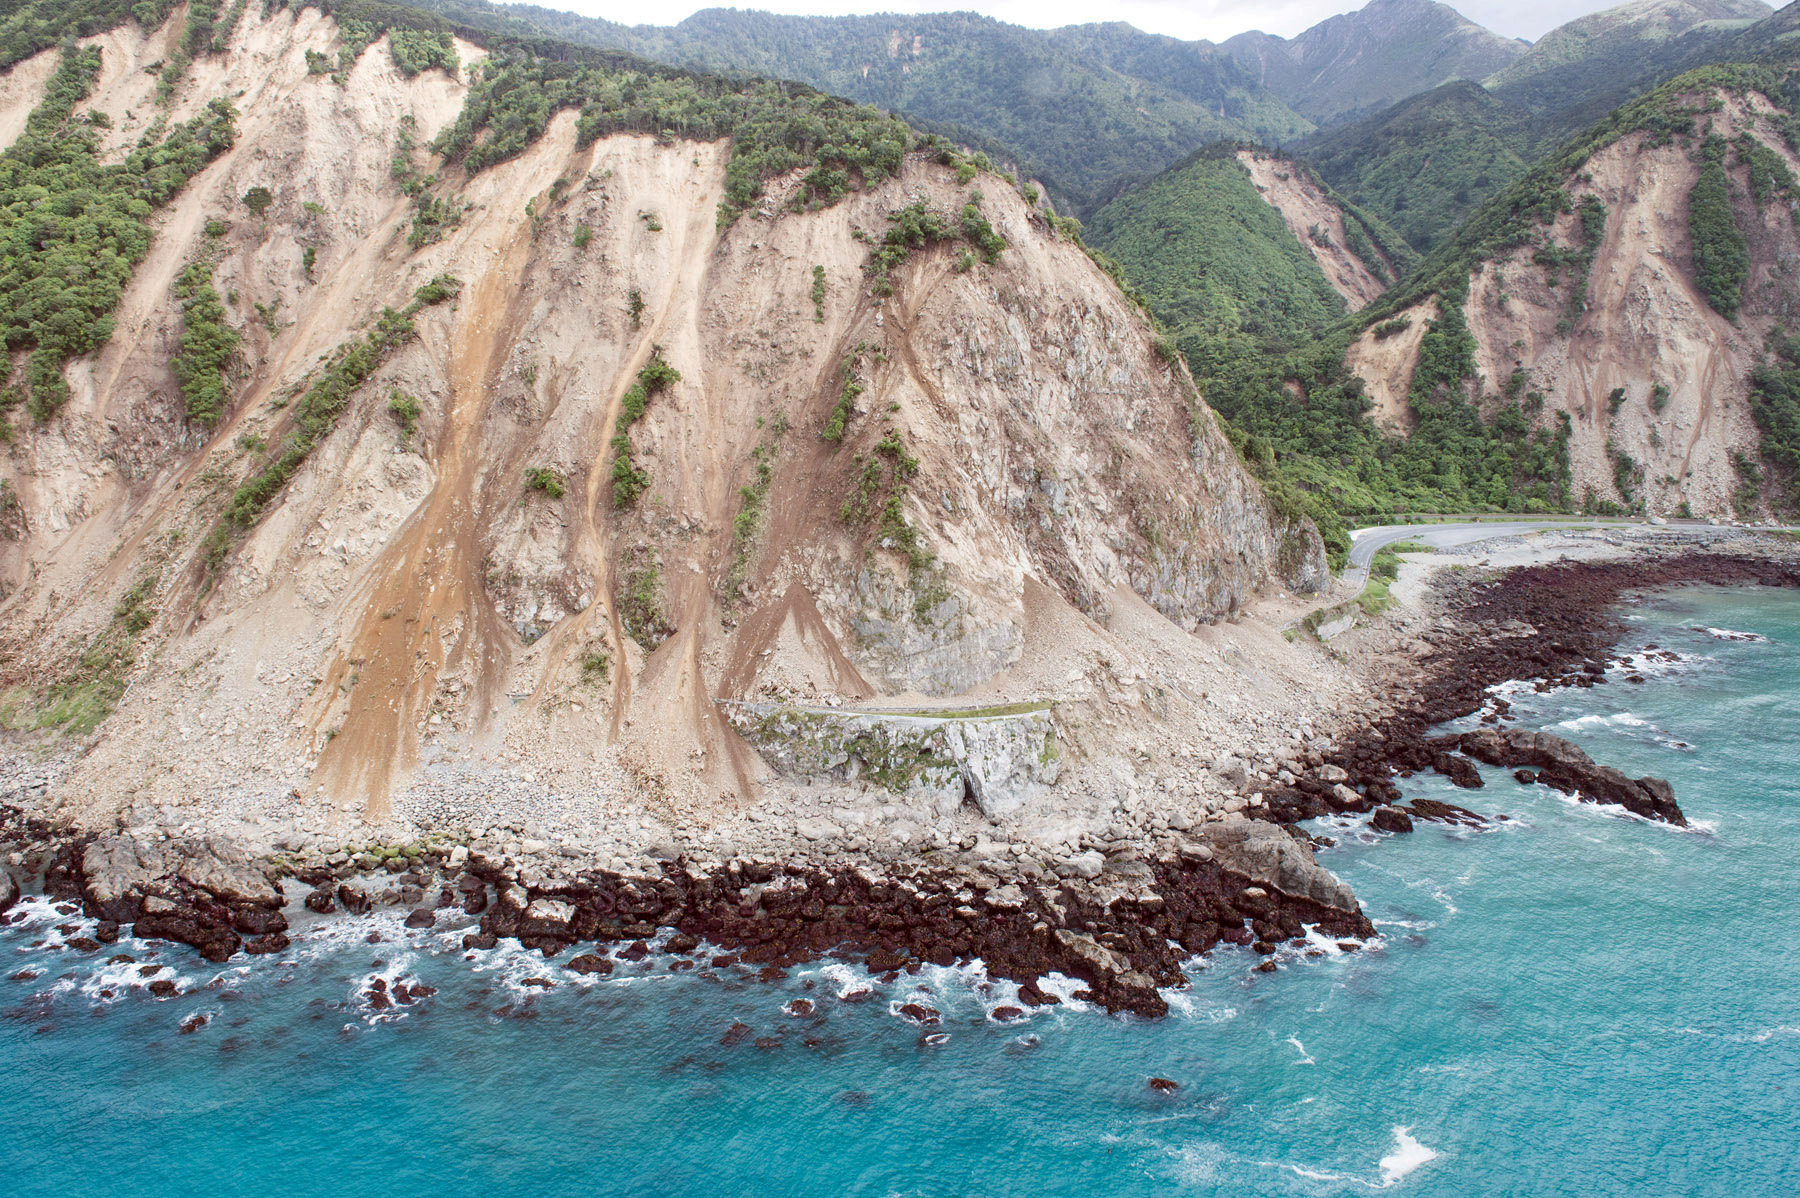 Landslides block State Highway One near Kaikoura on the upper east coast of New Zealand's South Island following an earthquake, November 14, 2016. Sgt Sam Shepherd/Courtesy of Royal New Zealand